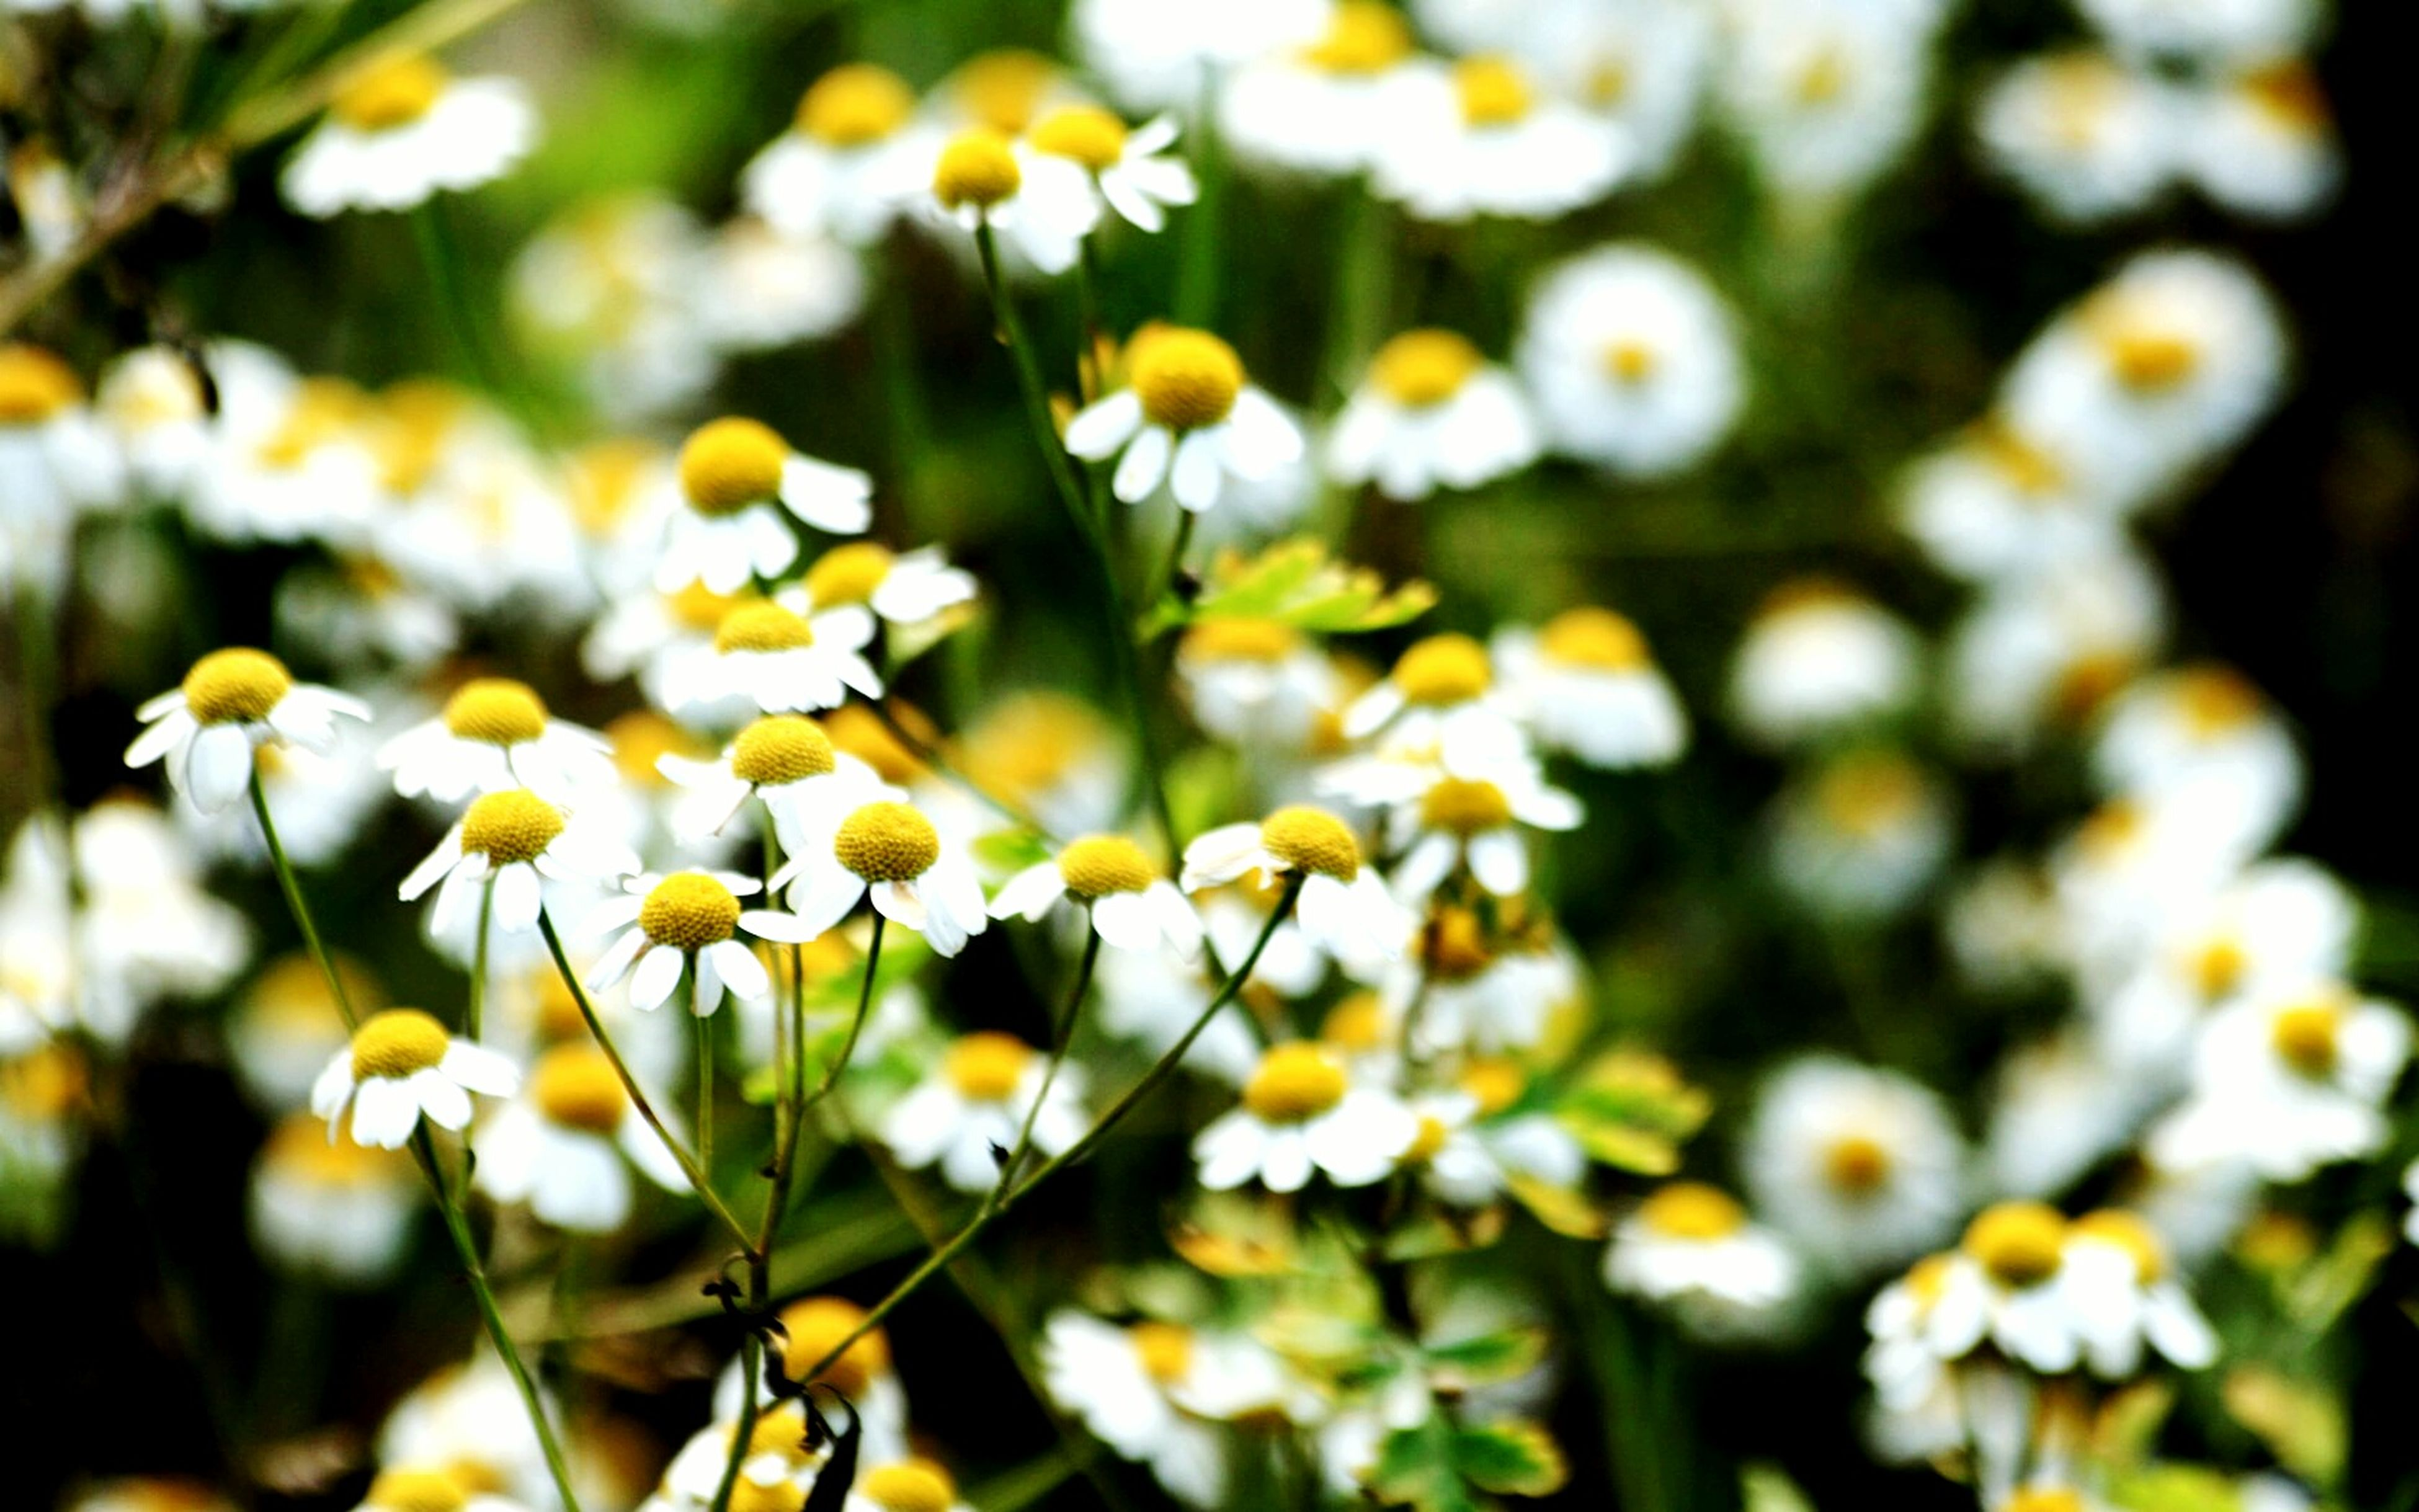 flower, freshness, growth, fragility, beauty in nature, petal, yellow, nature, flower head, white color, close-up, blooming, focus on foreground, selective focus, plant, daisy, in bloom, field, outdoors, no people